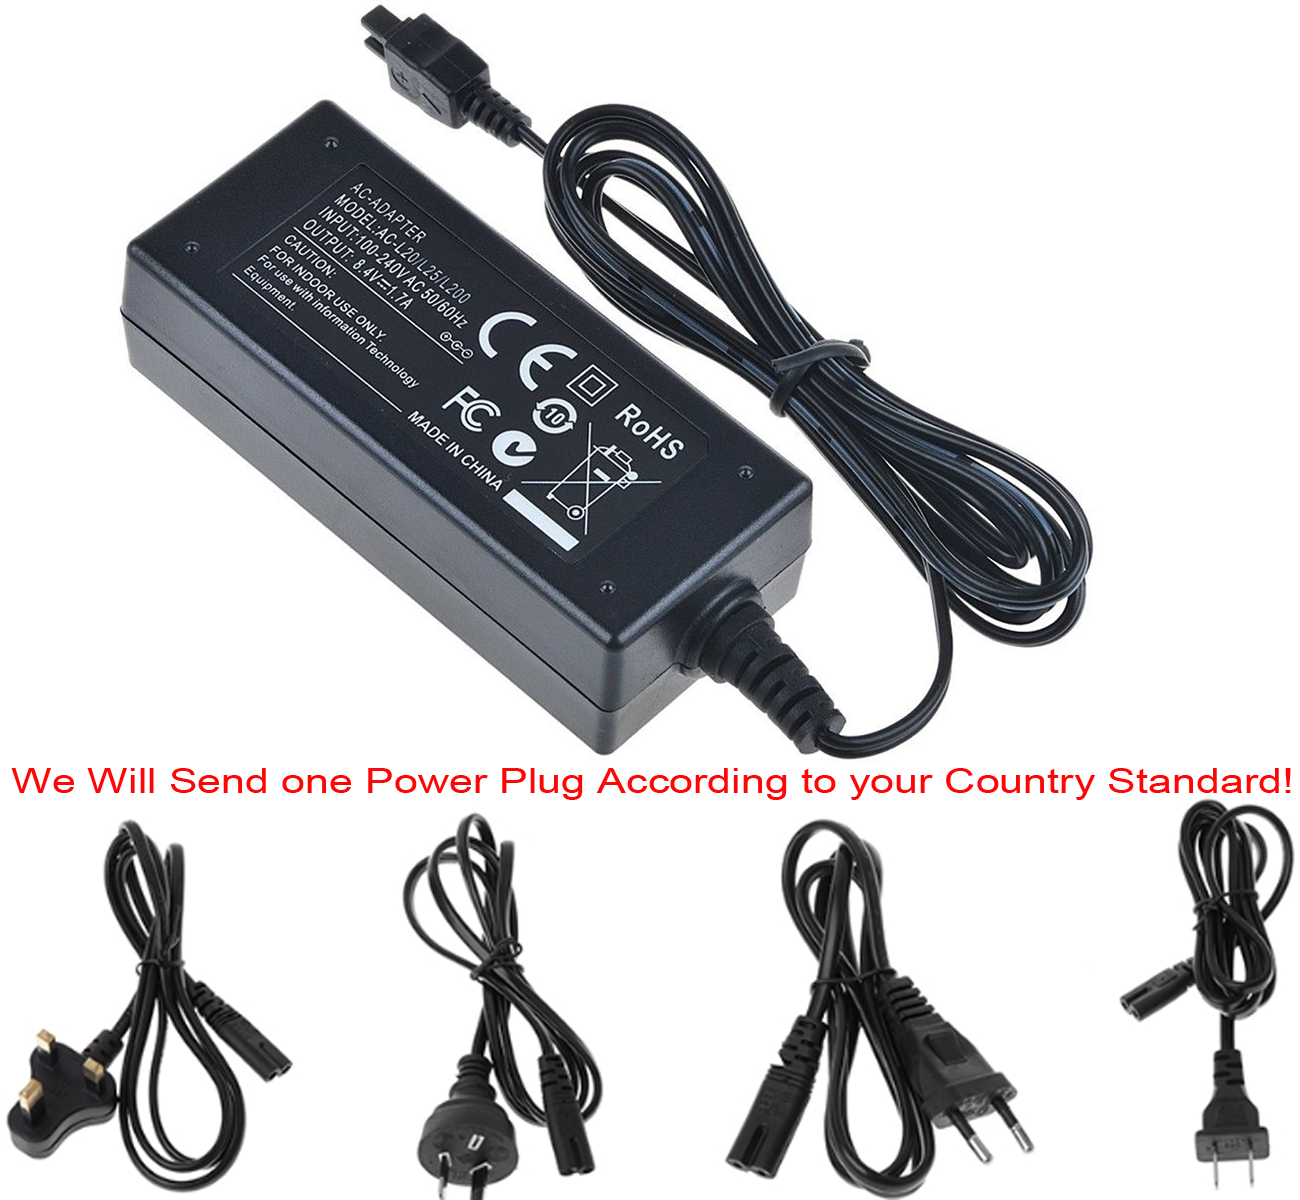 US $7 48 12% OFF|AC Power Adapter Charger for Sony DCR HC51E, DCR HC52E,  DCR HC53E, DCR HC54E, DCR HC62E, DCR HC65E, DCR HC85E Handycam Camcorder-in